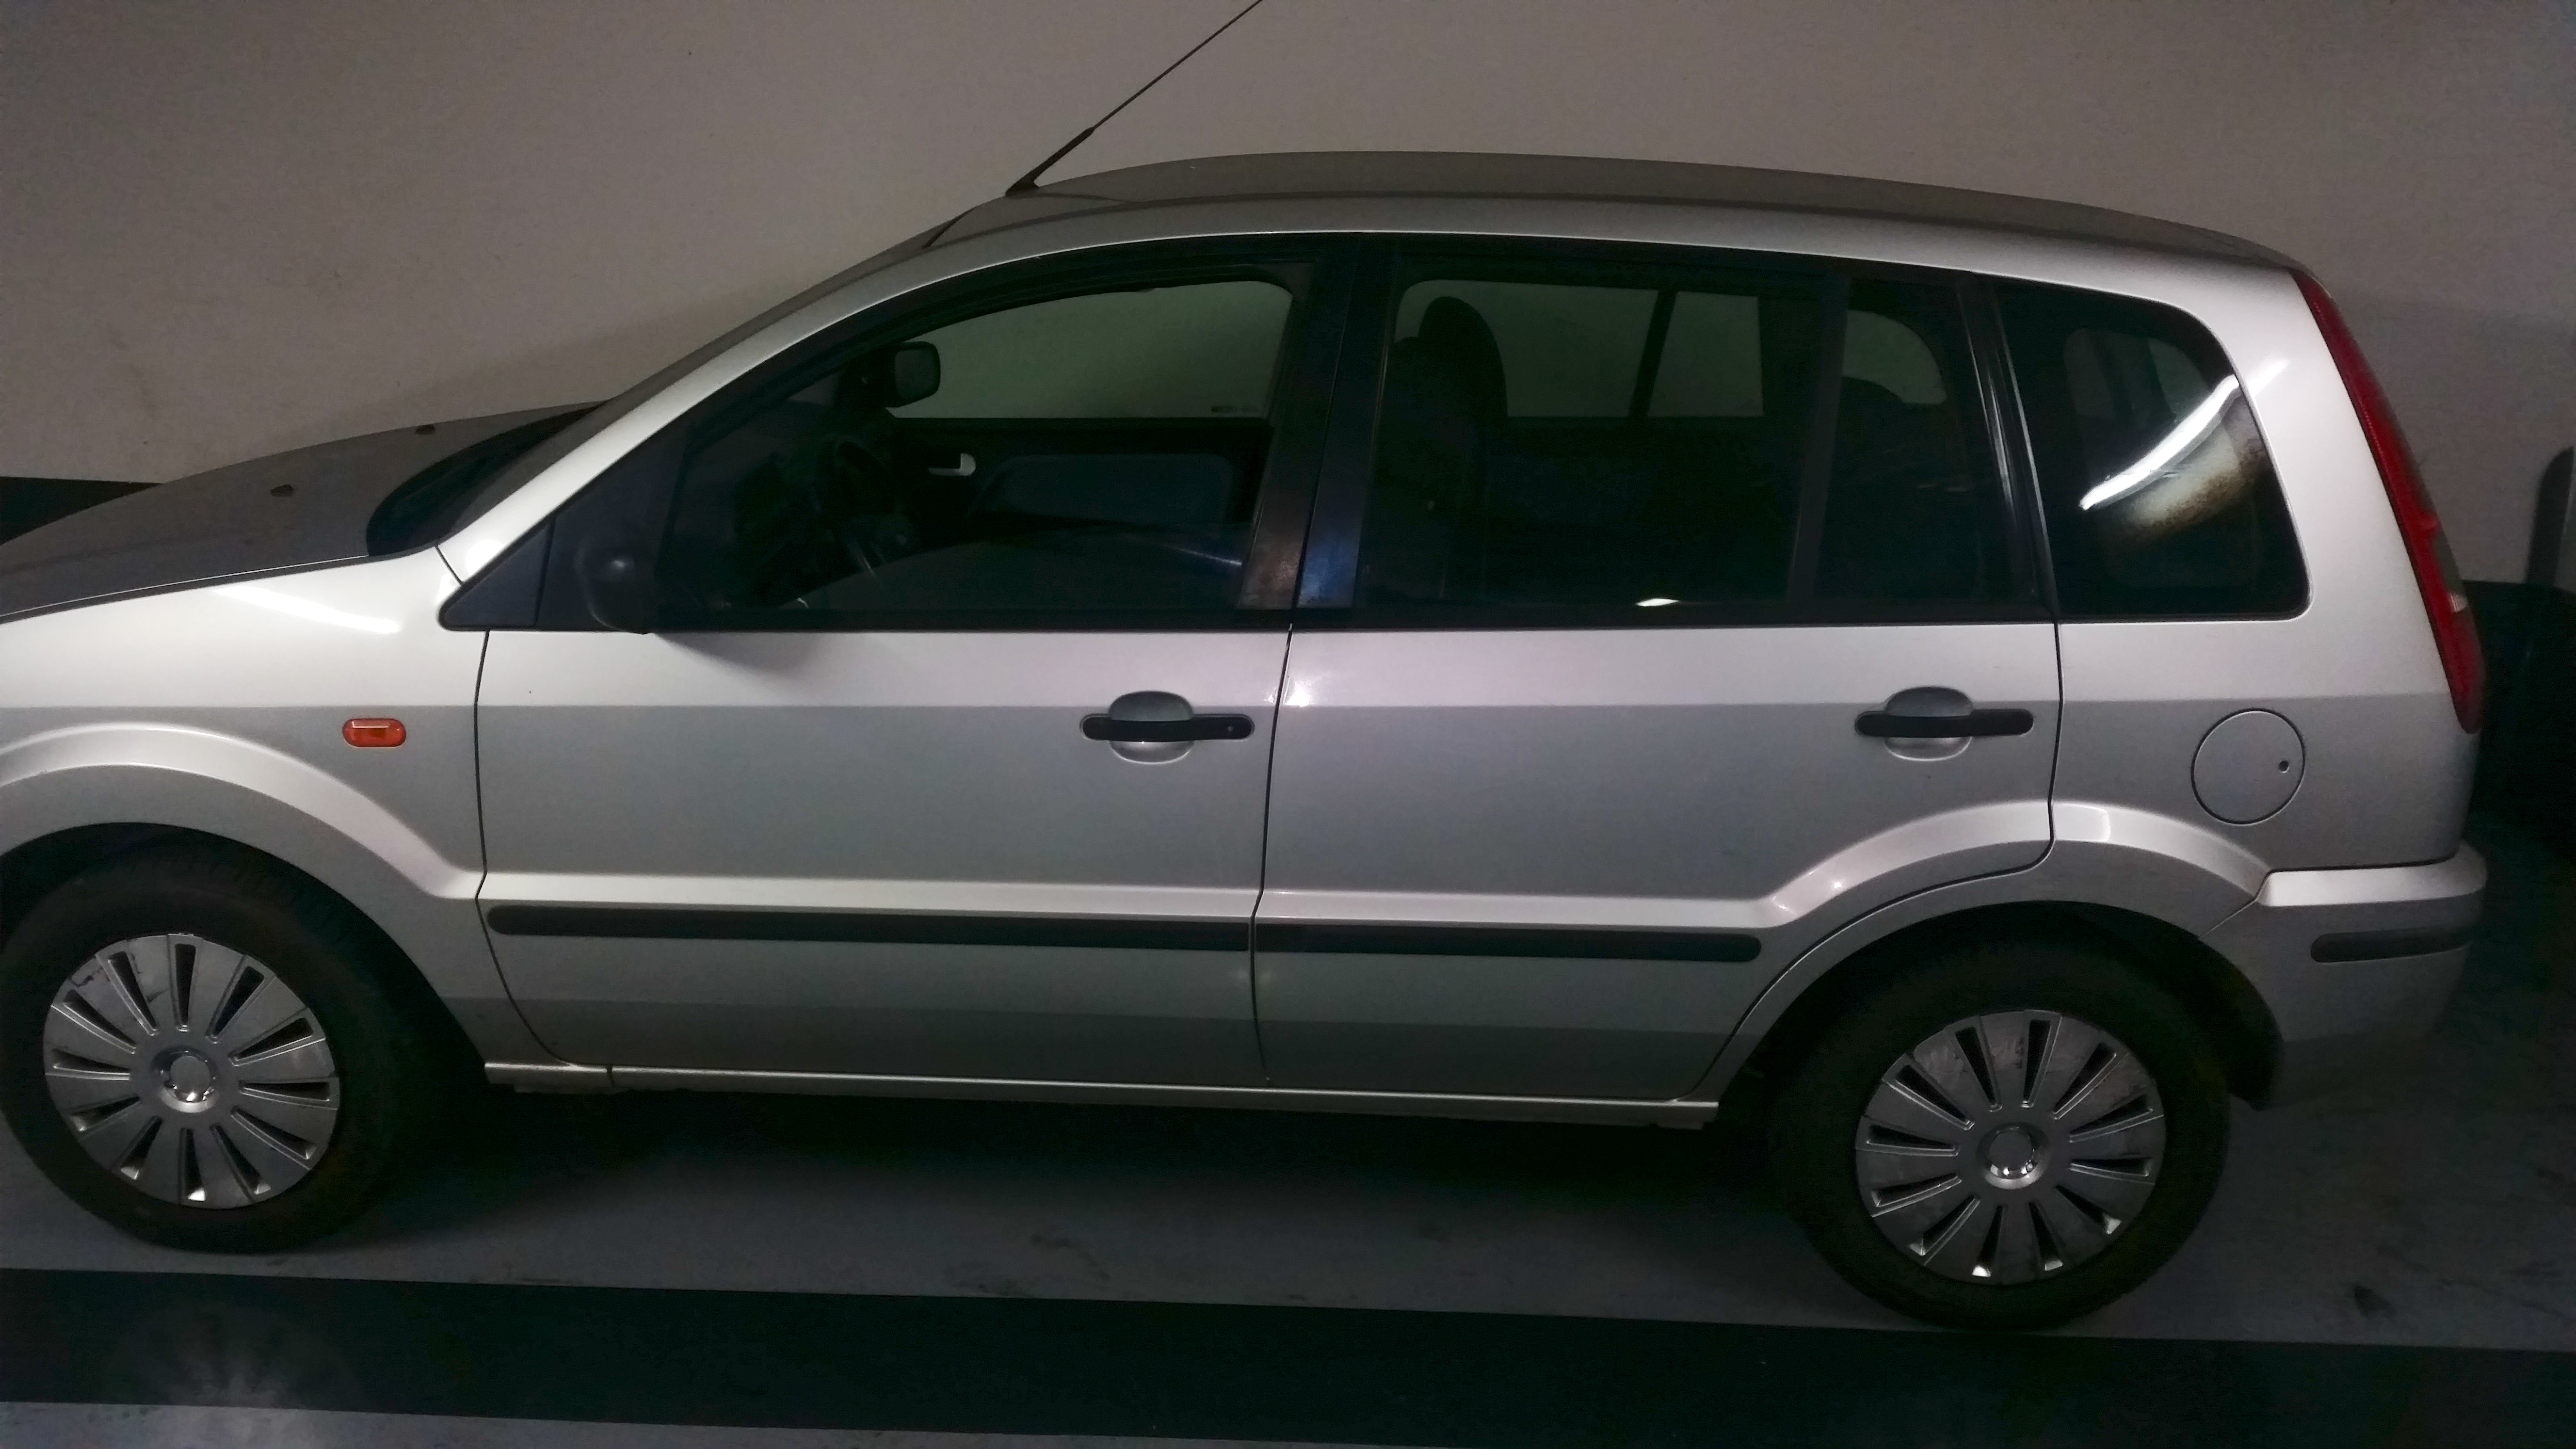 ford fusion, 2005, Diesel - Familiale Montreuil (93)